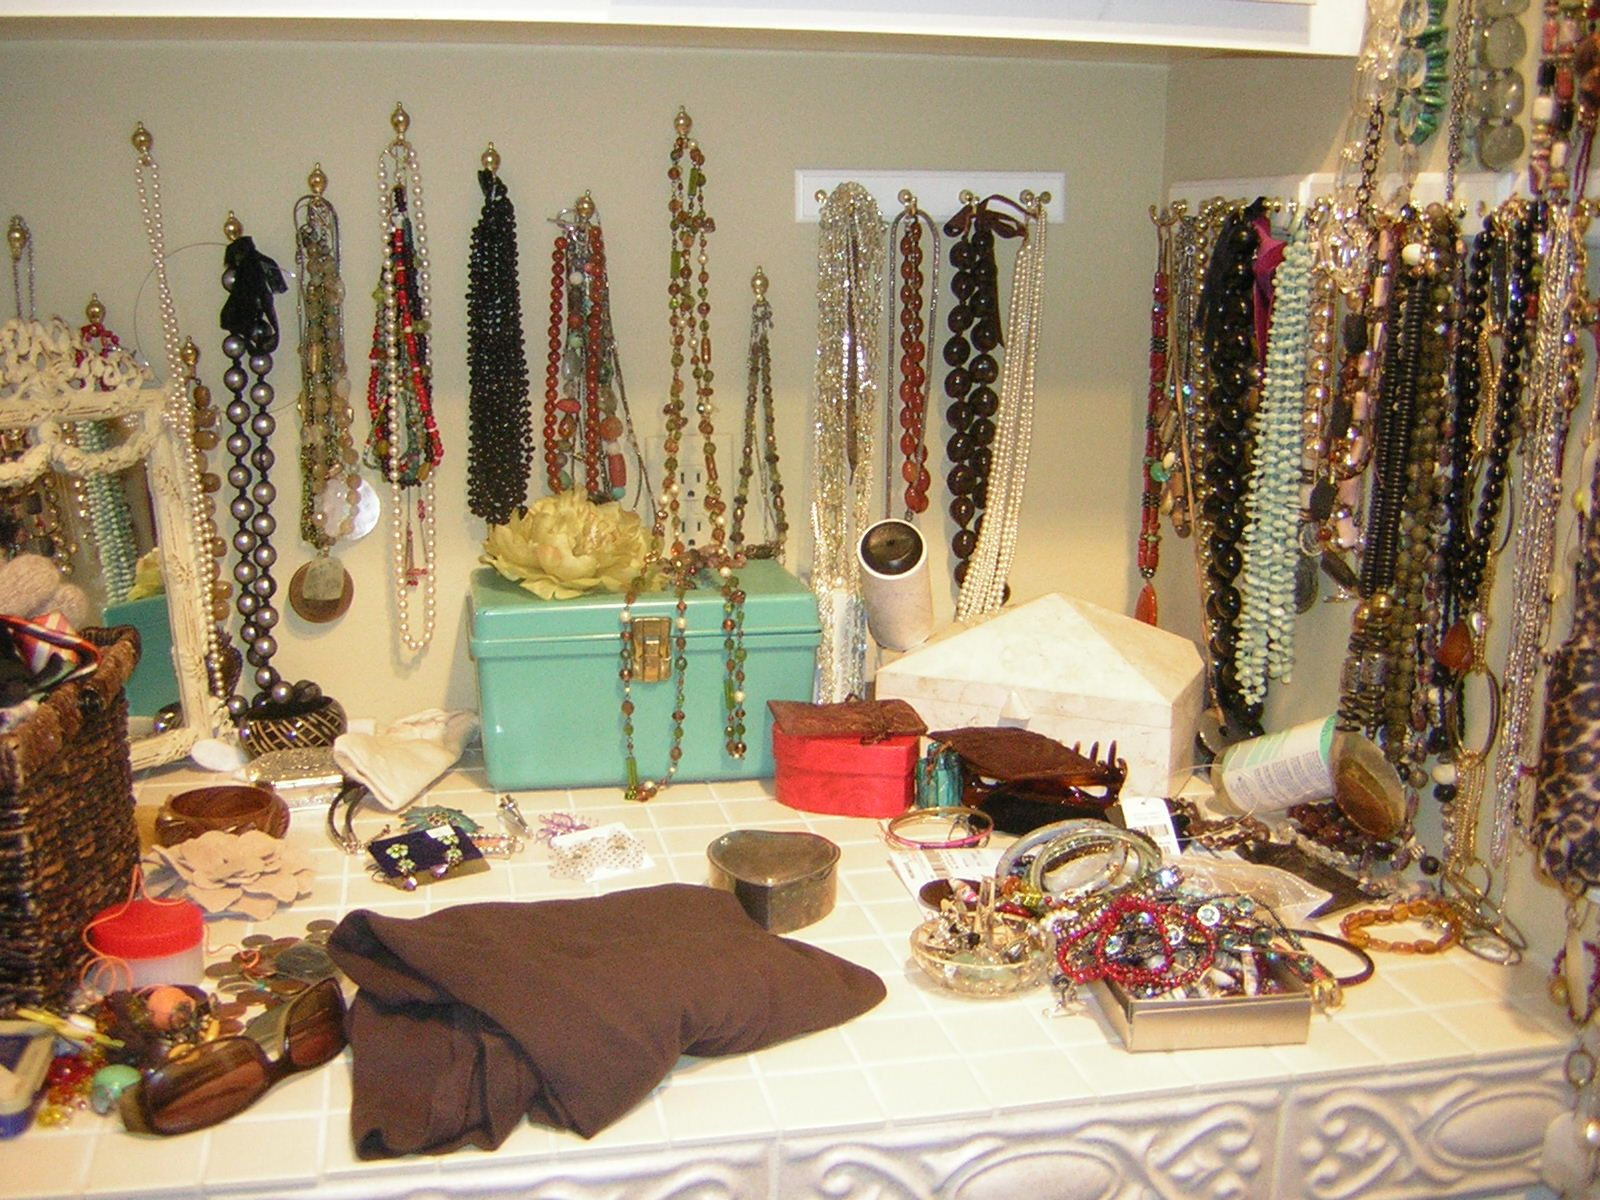 organizing ideas Jewelry Organizing Ideas What Are Yours San